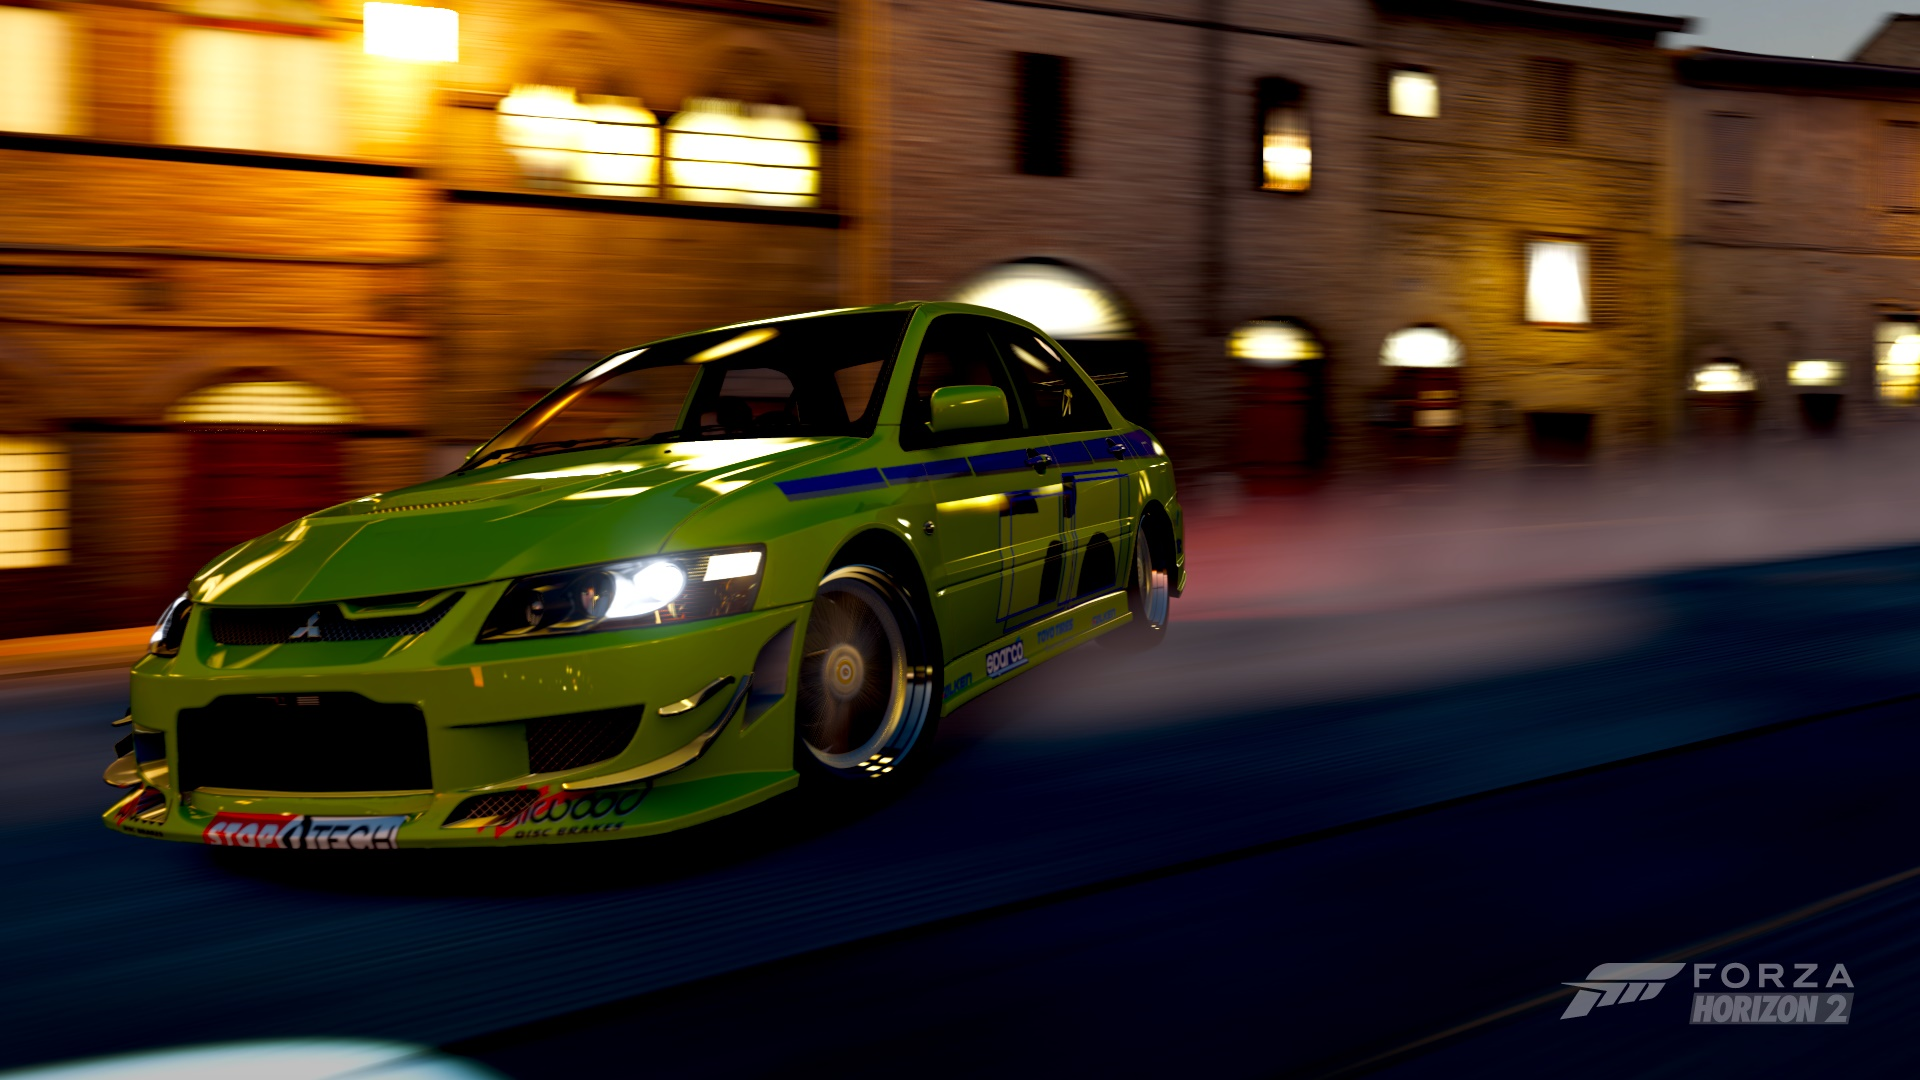 Paul Walker's Mitsubishi Evo from 2Fast 2Furious that I re-created